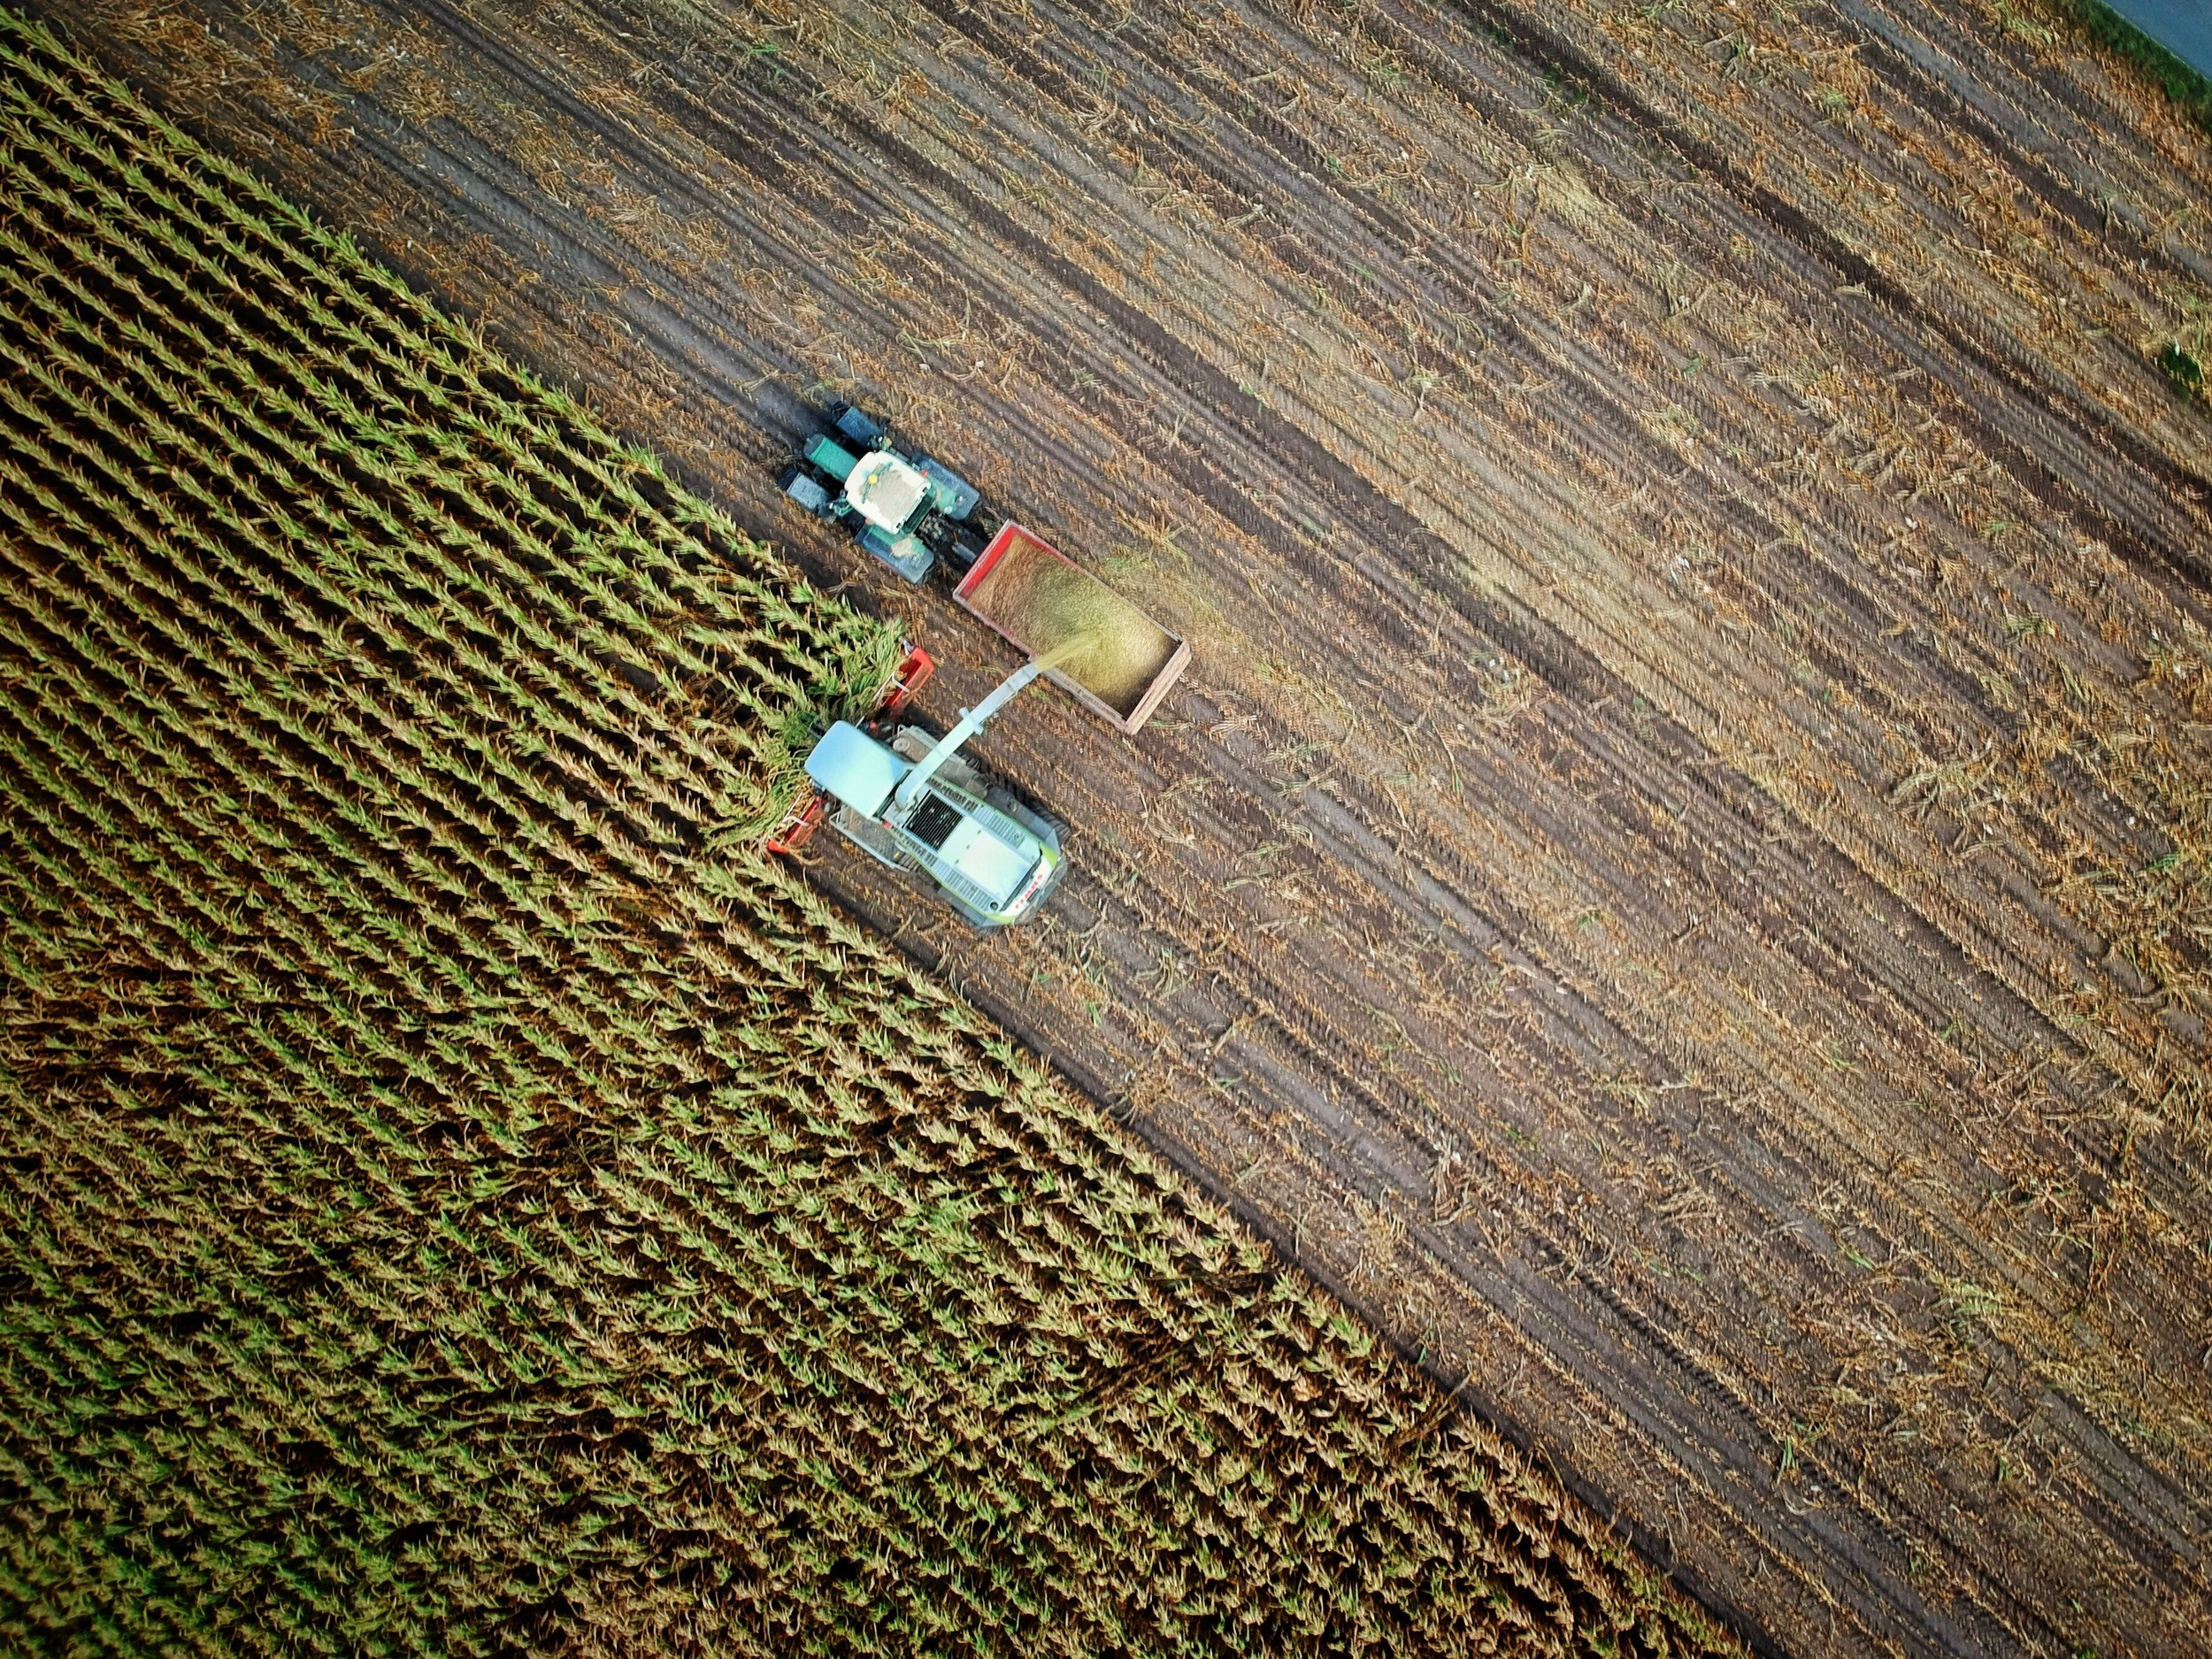 Combine cutting corn with tractor